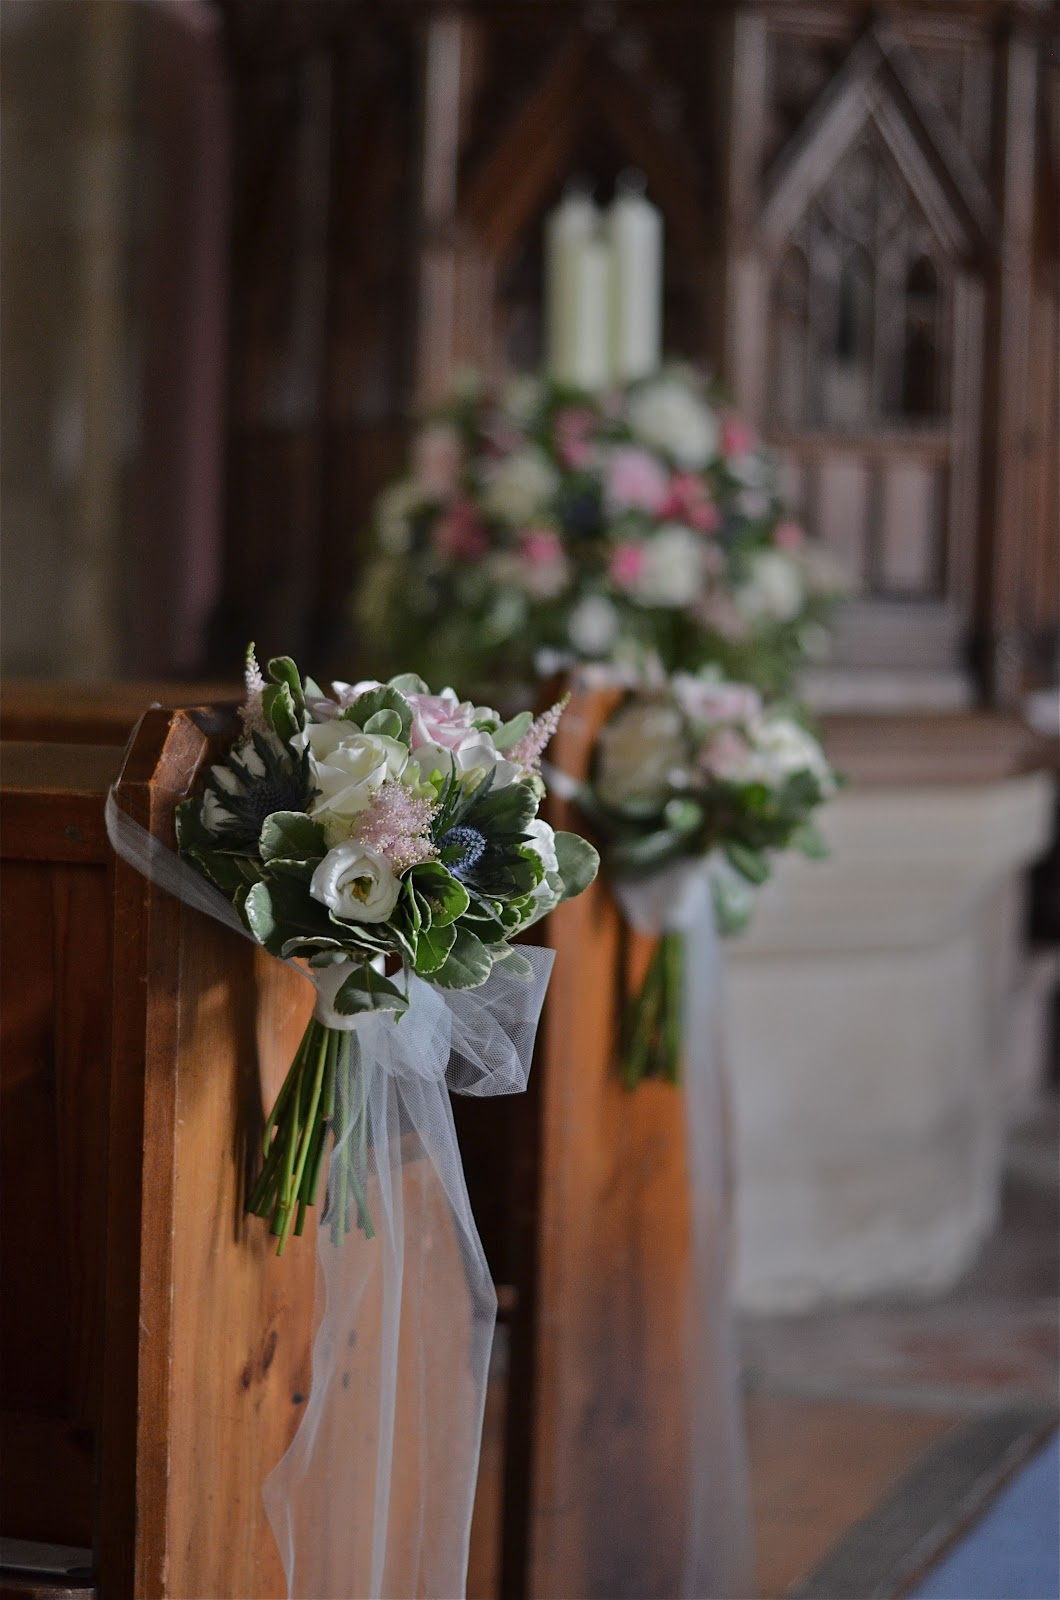 Wedding flowers blog penny 39 s wedding flowers highclere for Wedding flowers ideas pictures